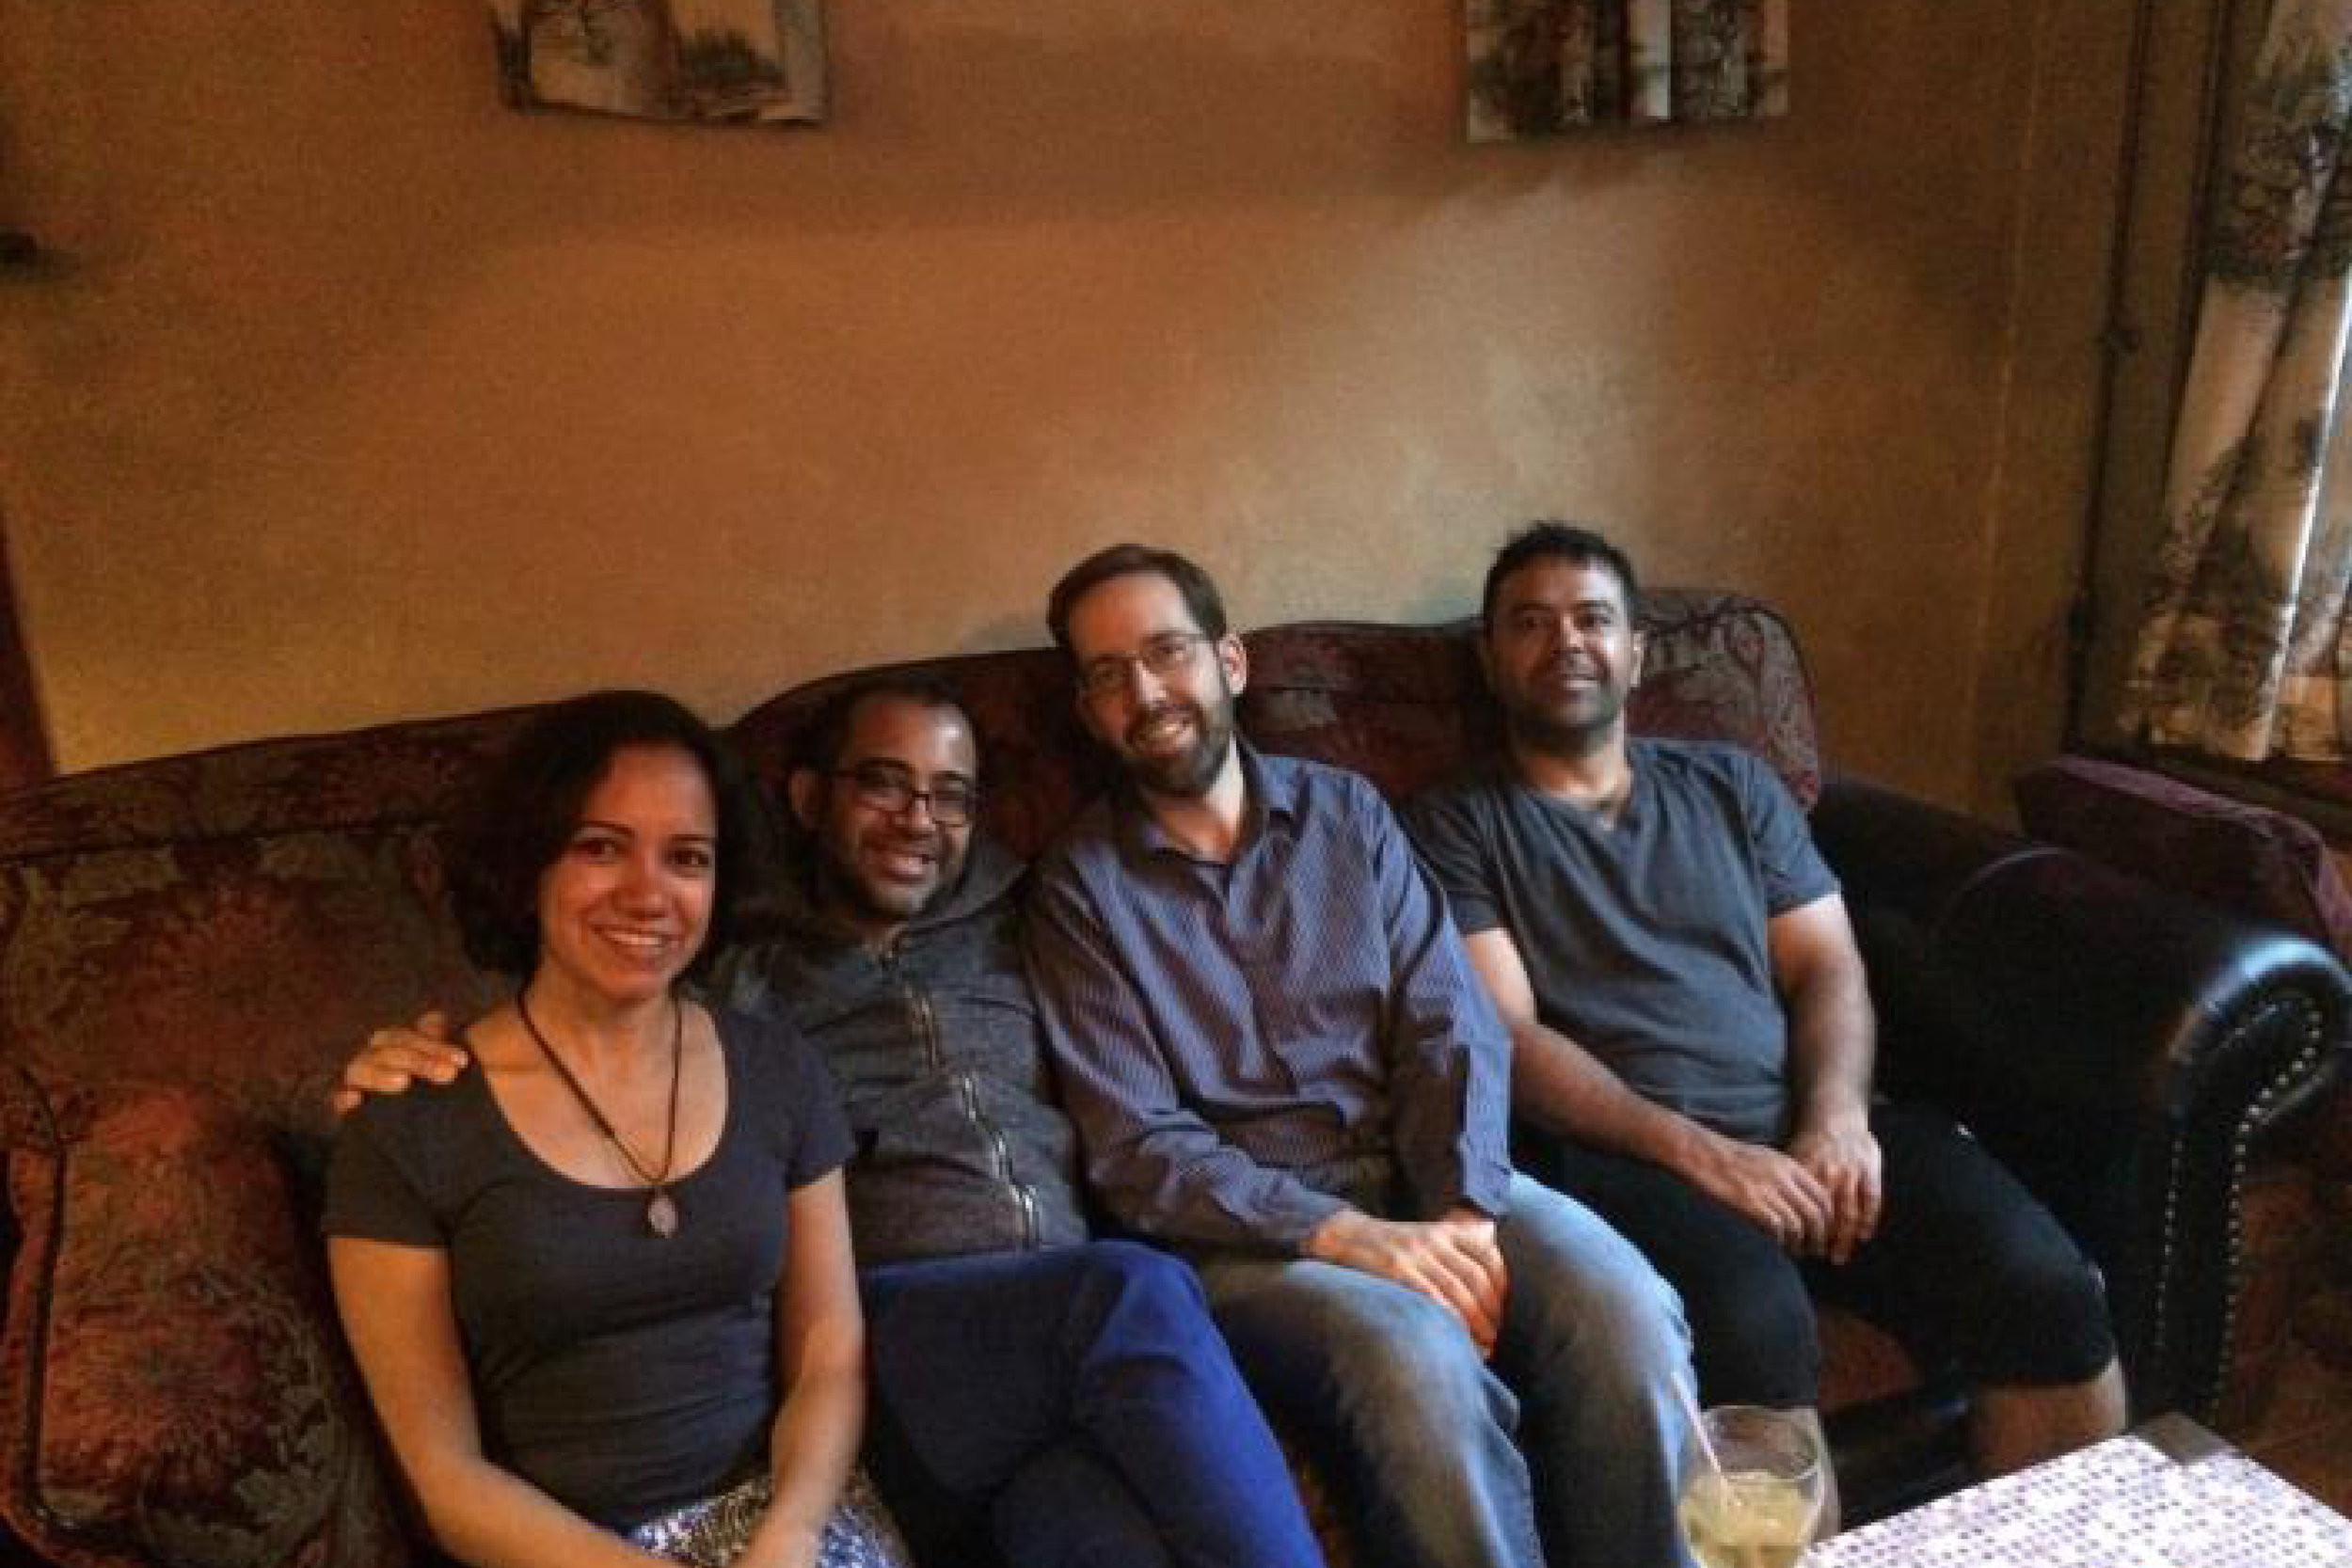 Upal and Chris with their roommates – their friends Lalitha and Upal's brother Ujjal.